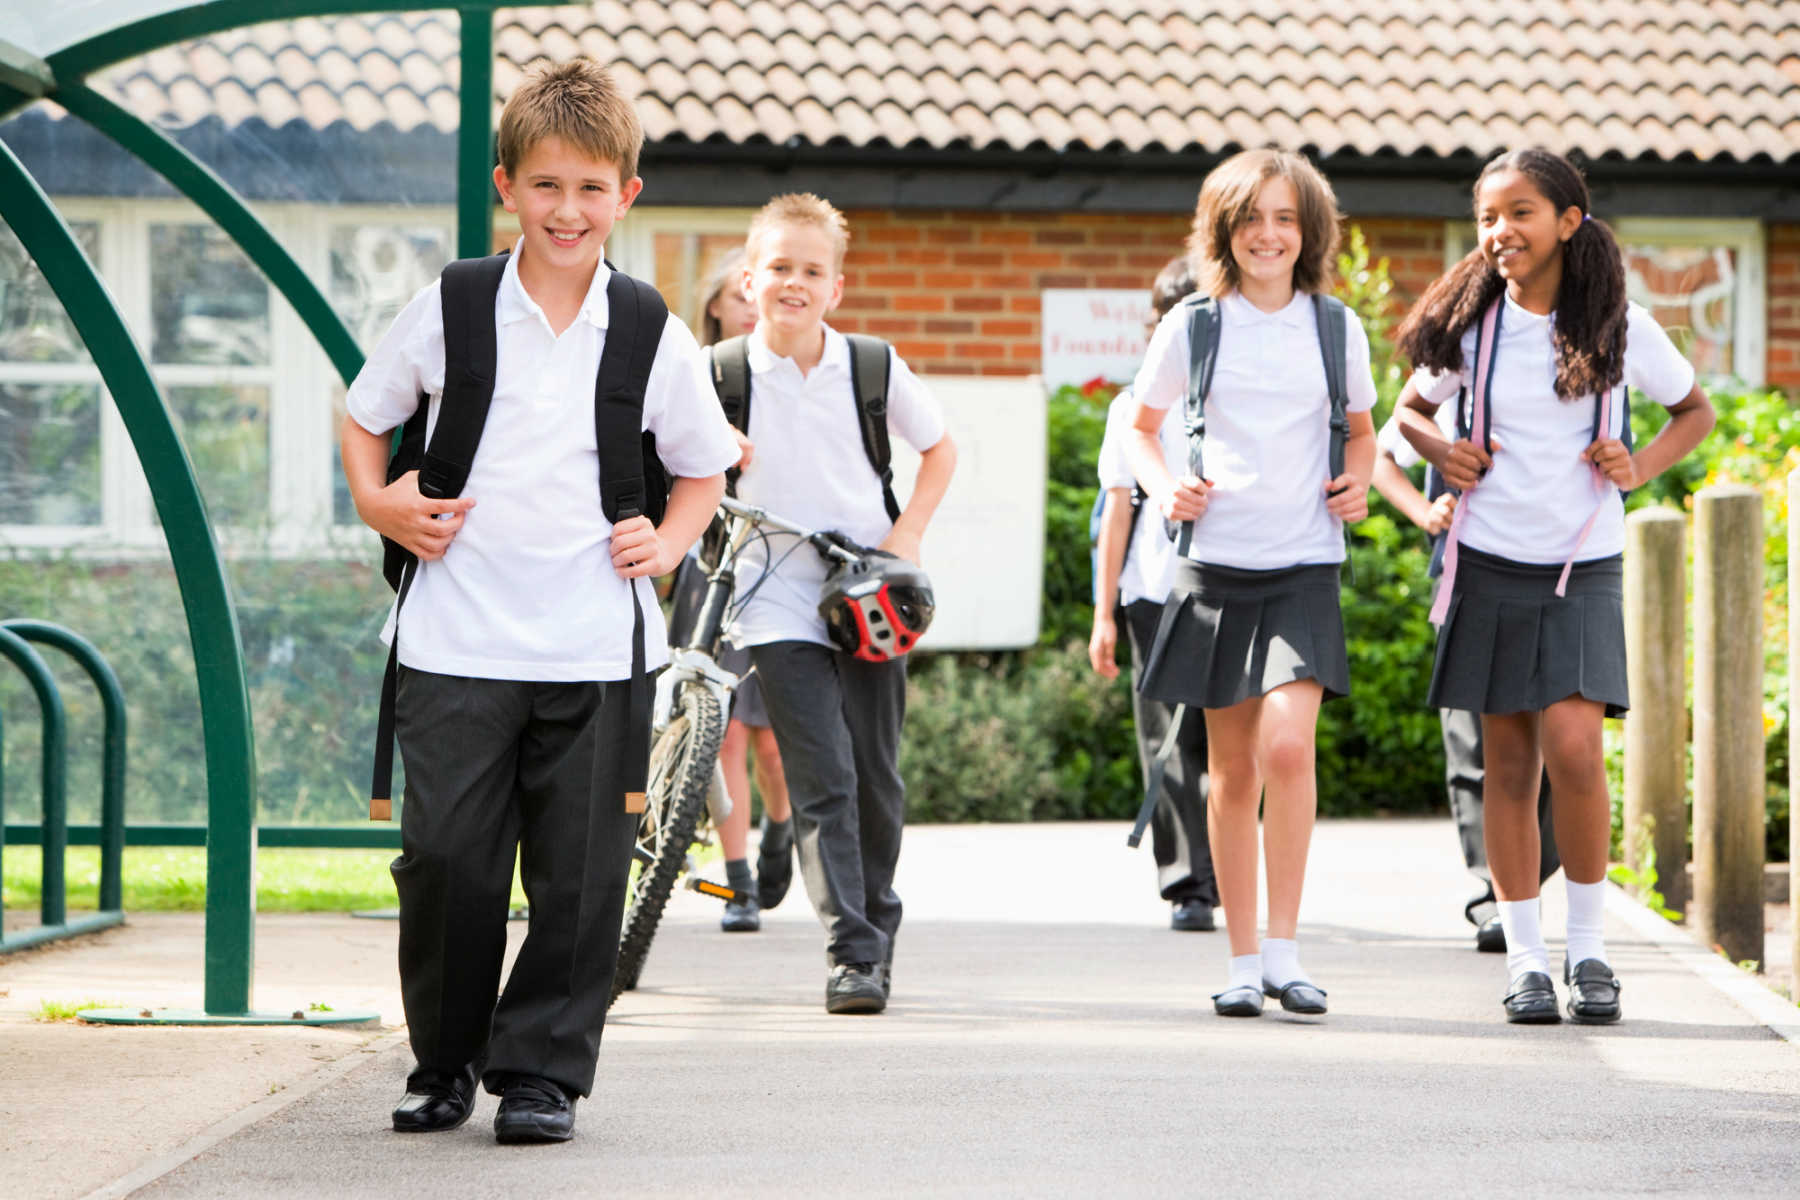 restrictions-easing-for-parents-at-school